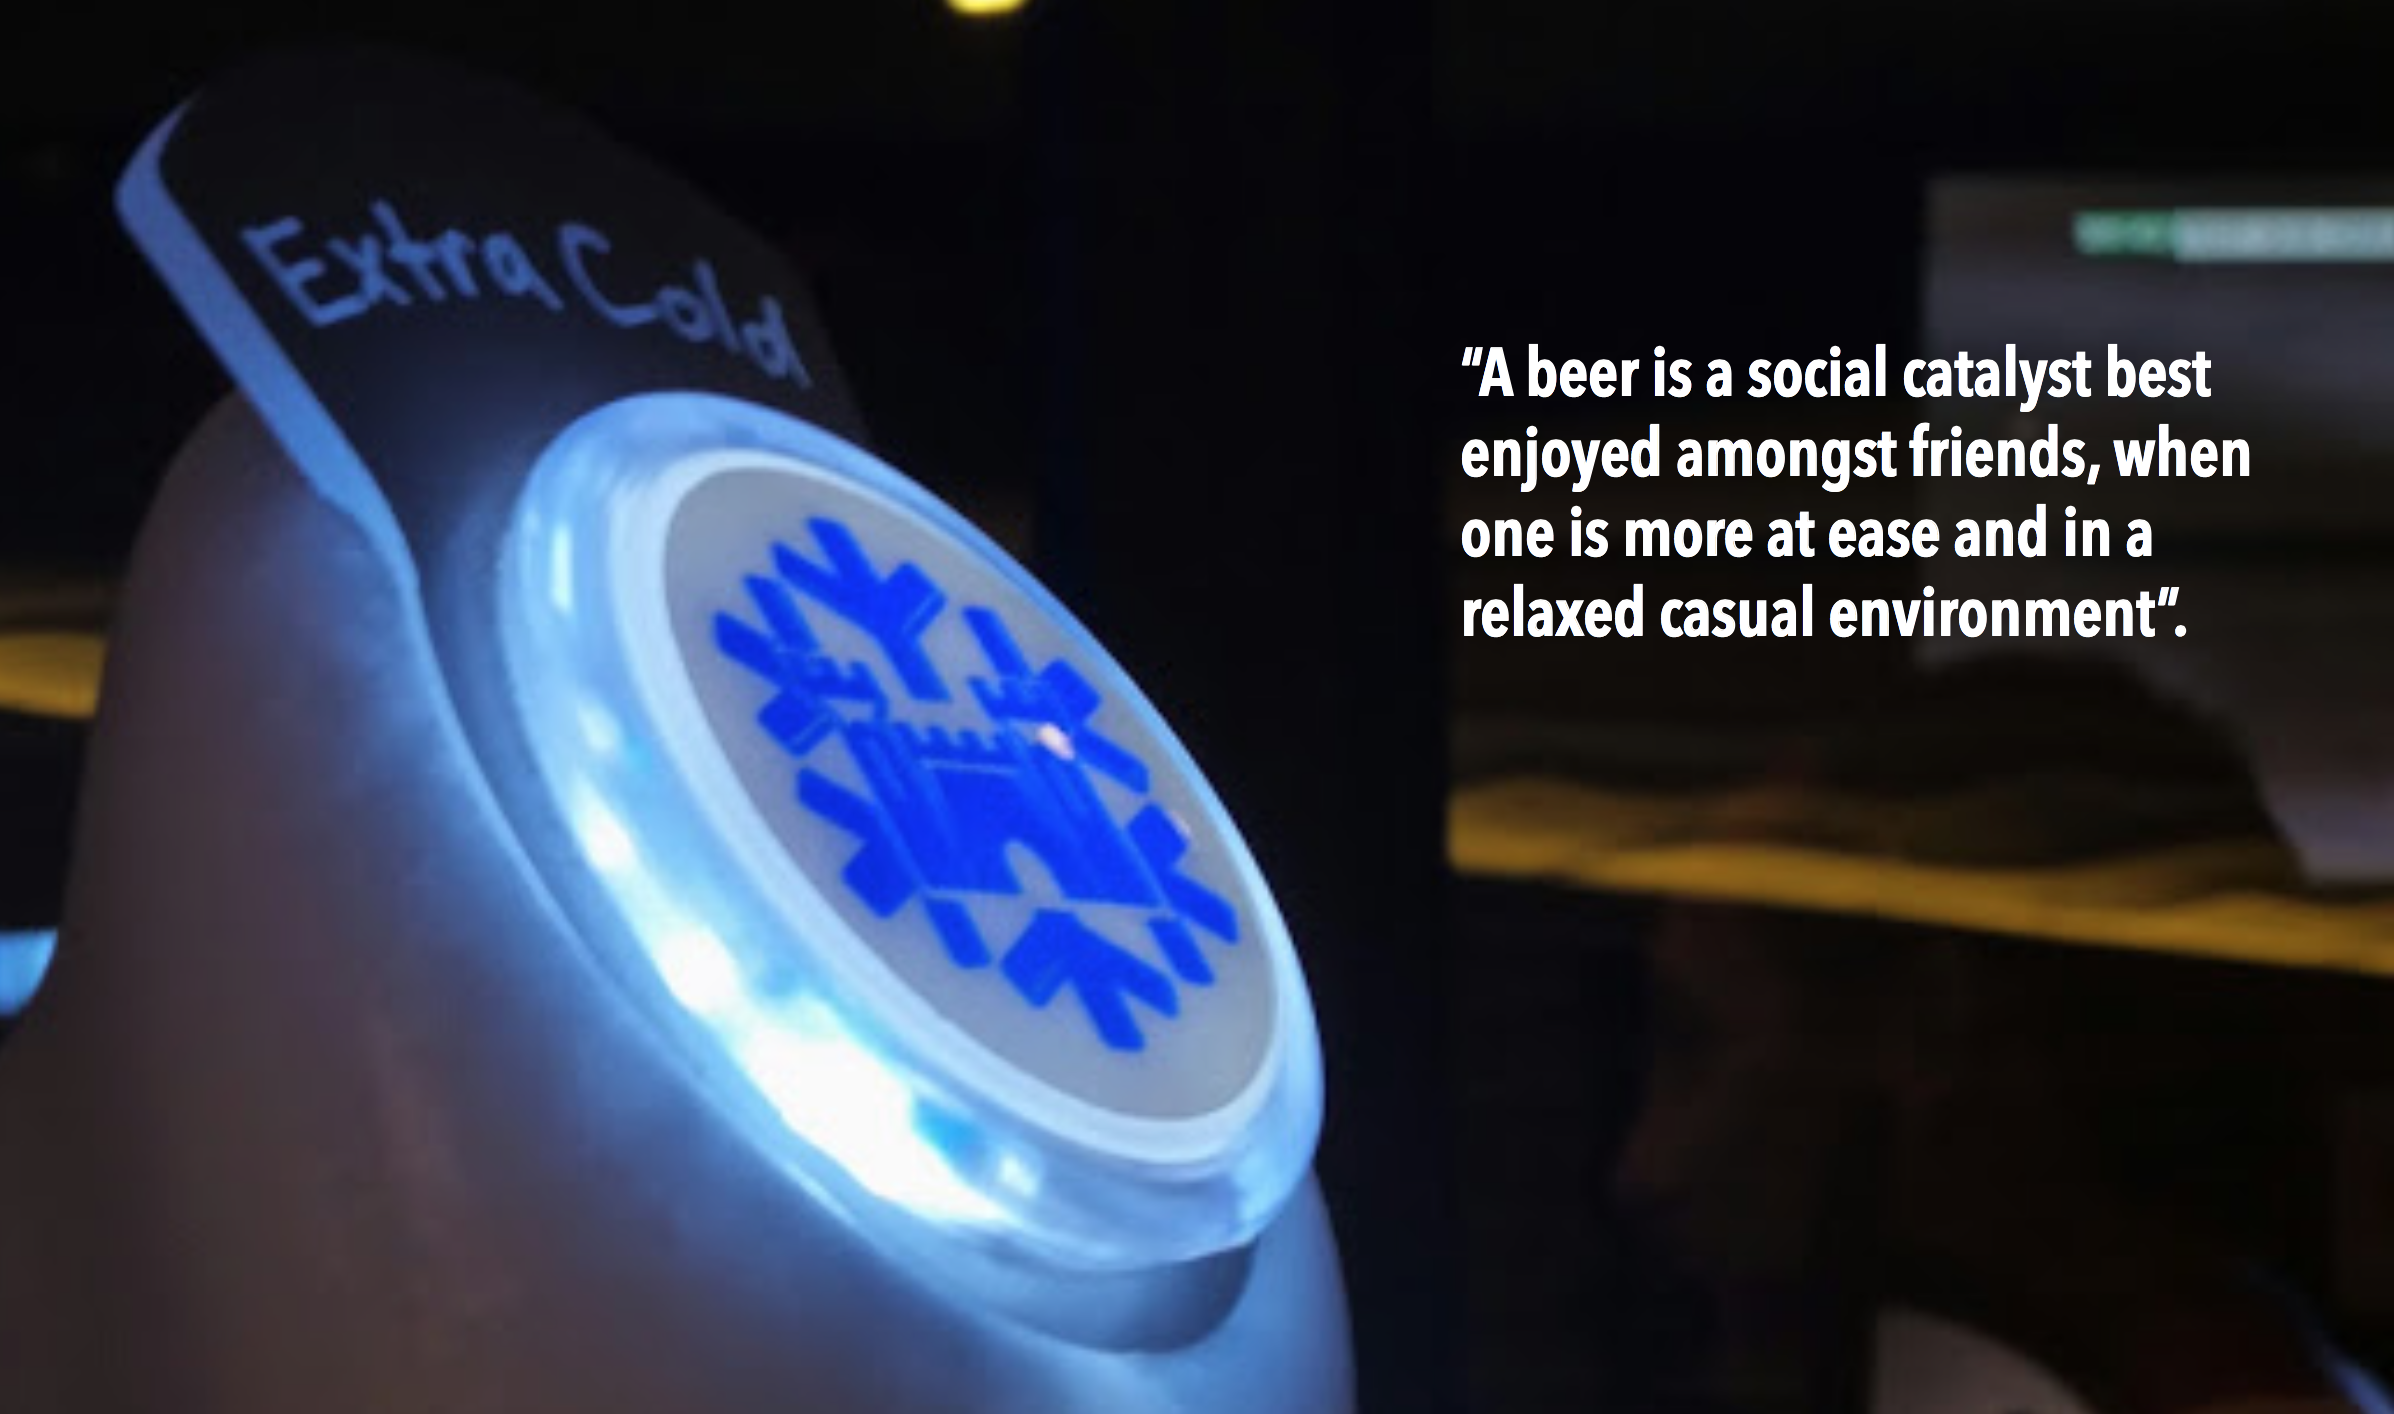 Flash insight: Beer drinking occasions